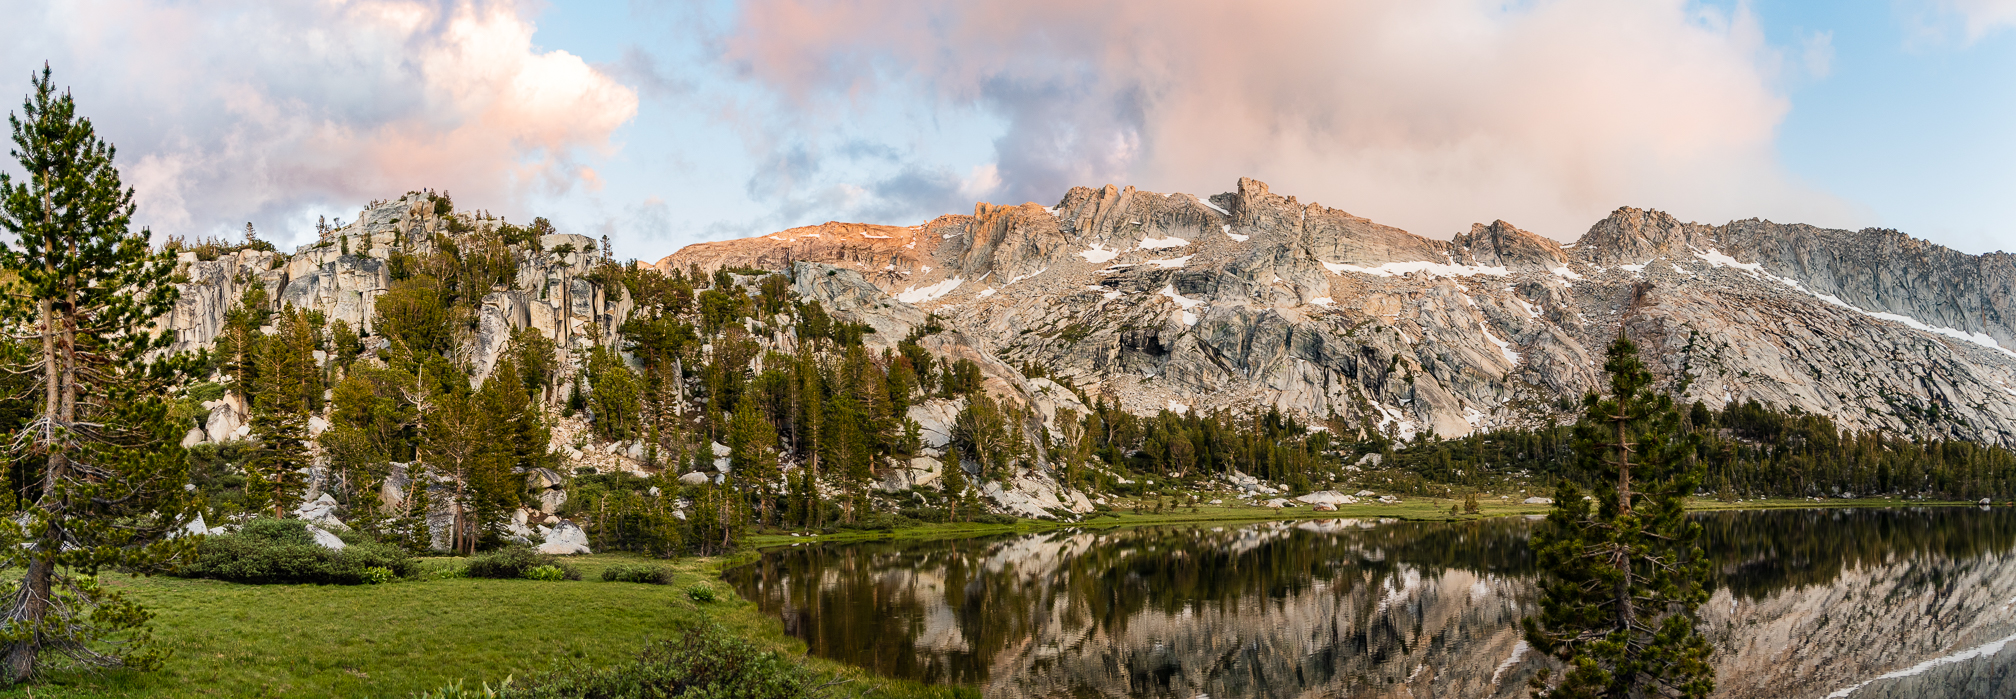 Panoramic view of granite ridgeline at 10,000 feet in Yosemite National Park